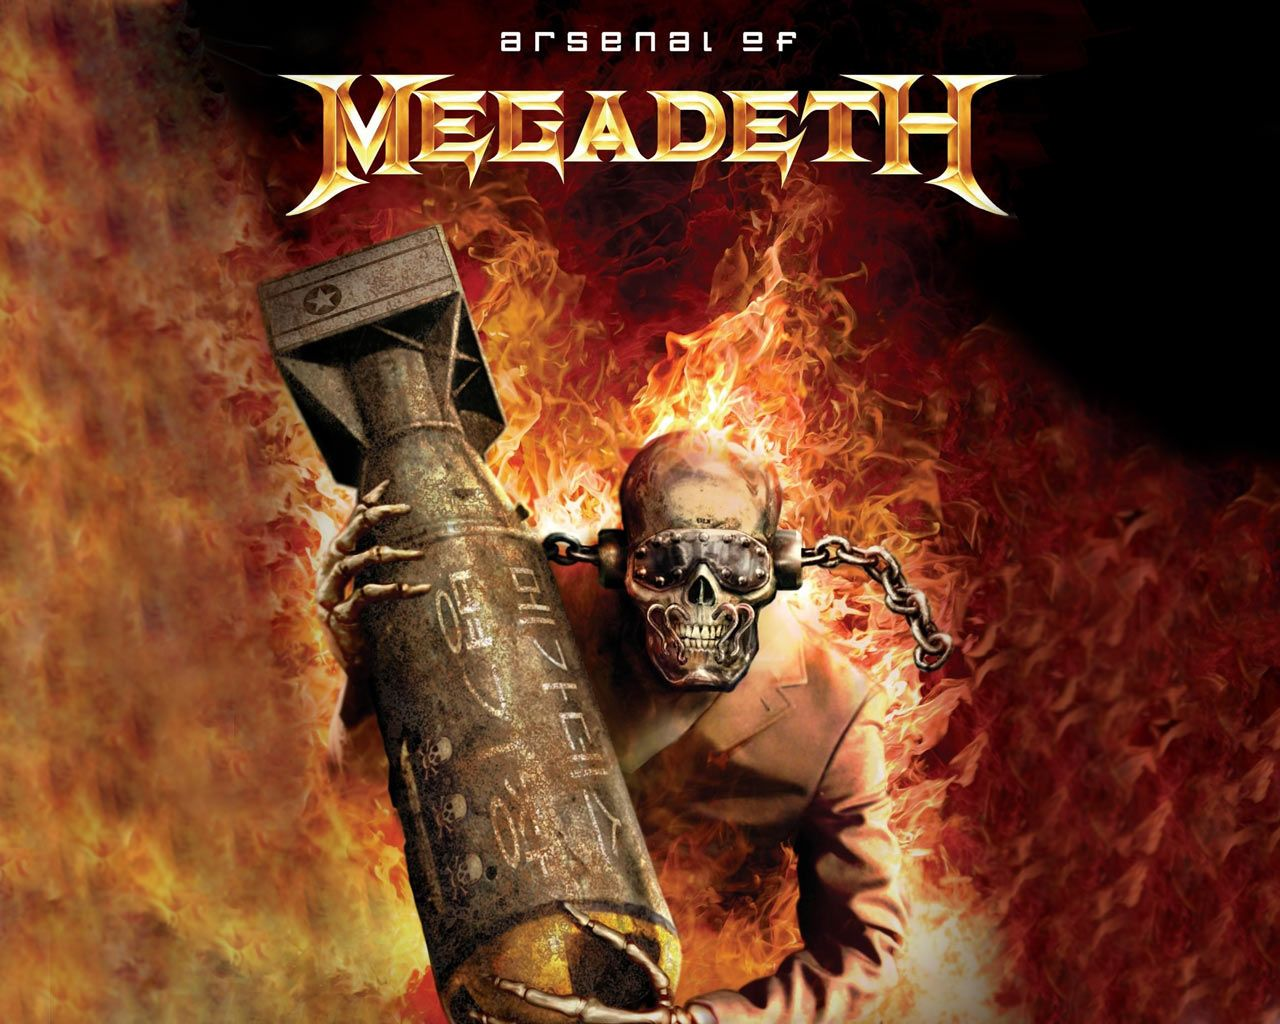 Pin By Rob Adams On Rock Megadeth Megadeth Albums Megadeath